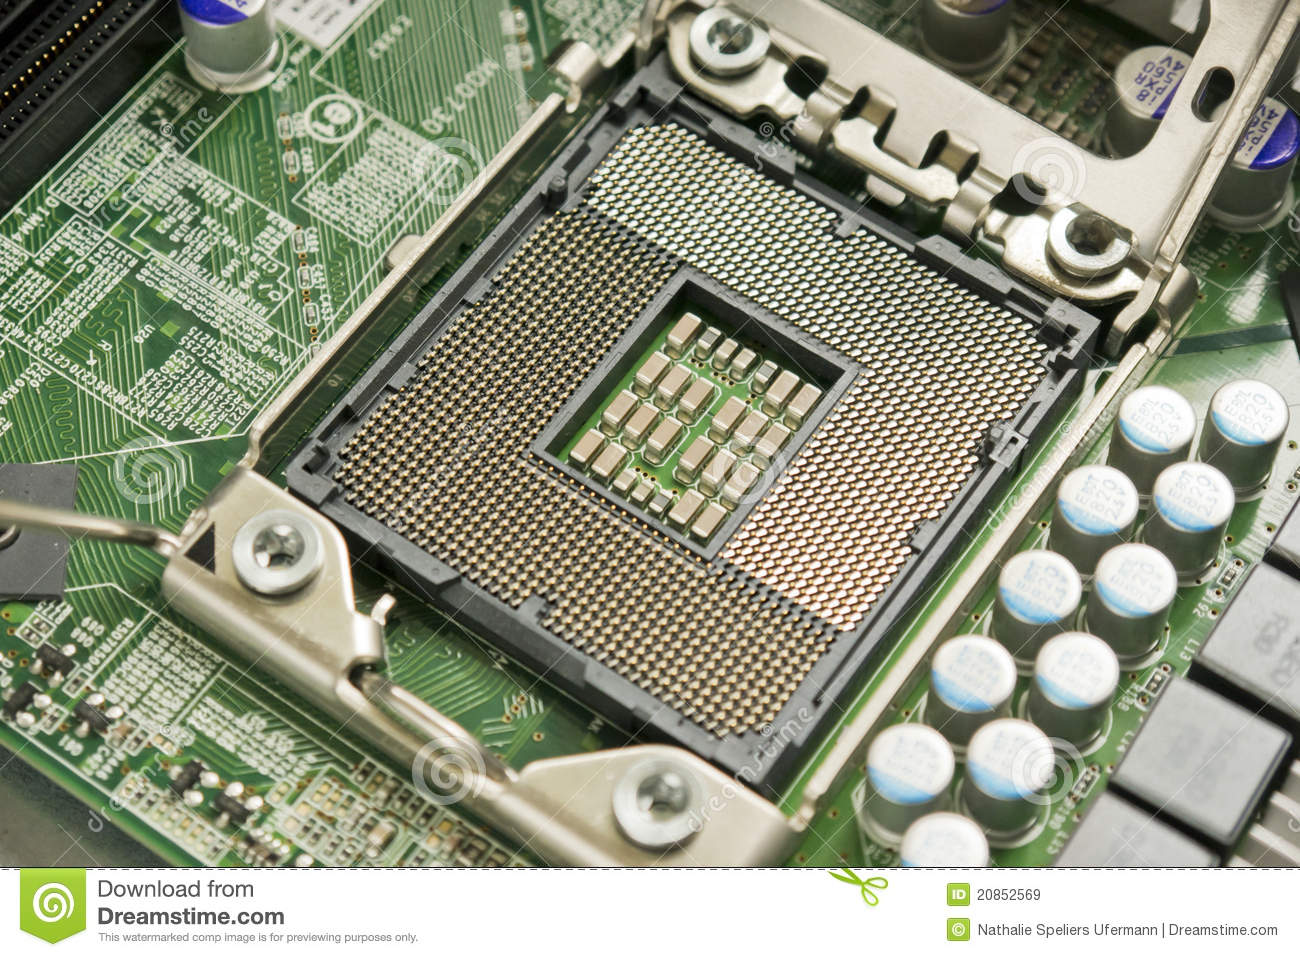 Modern CPU Socket from a 2011 computer with processor taken out.